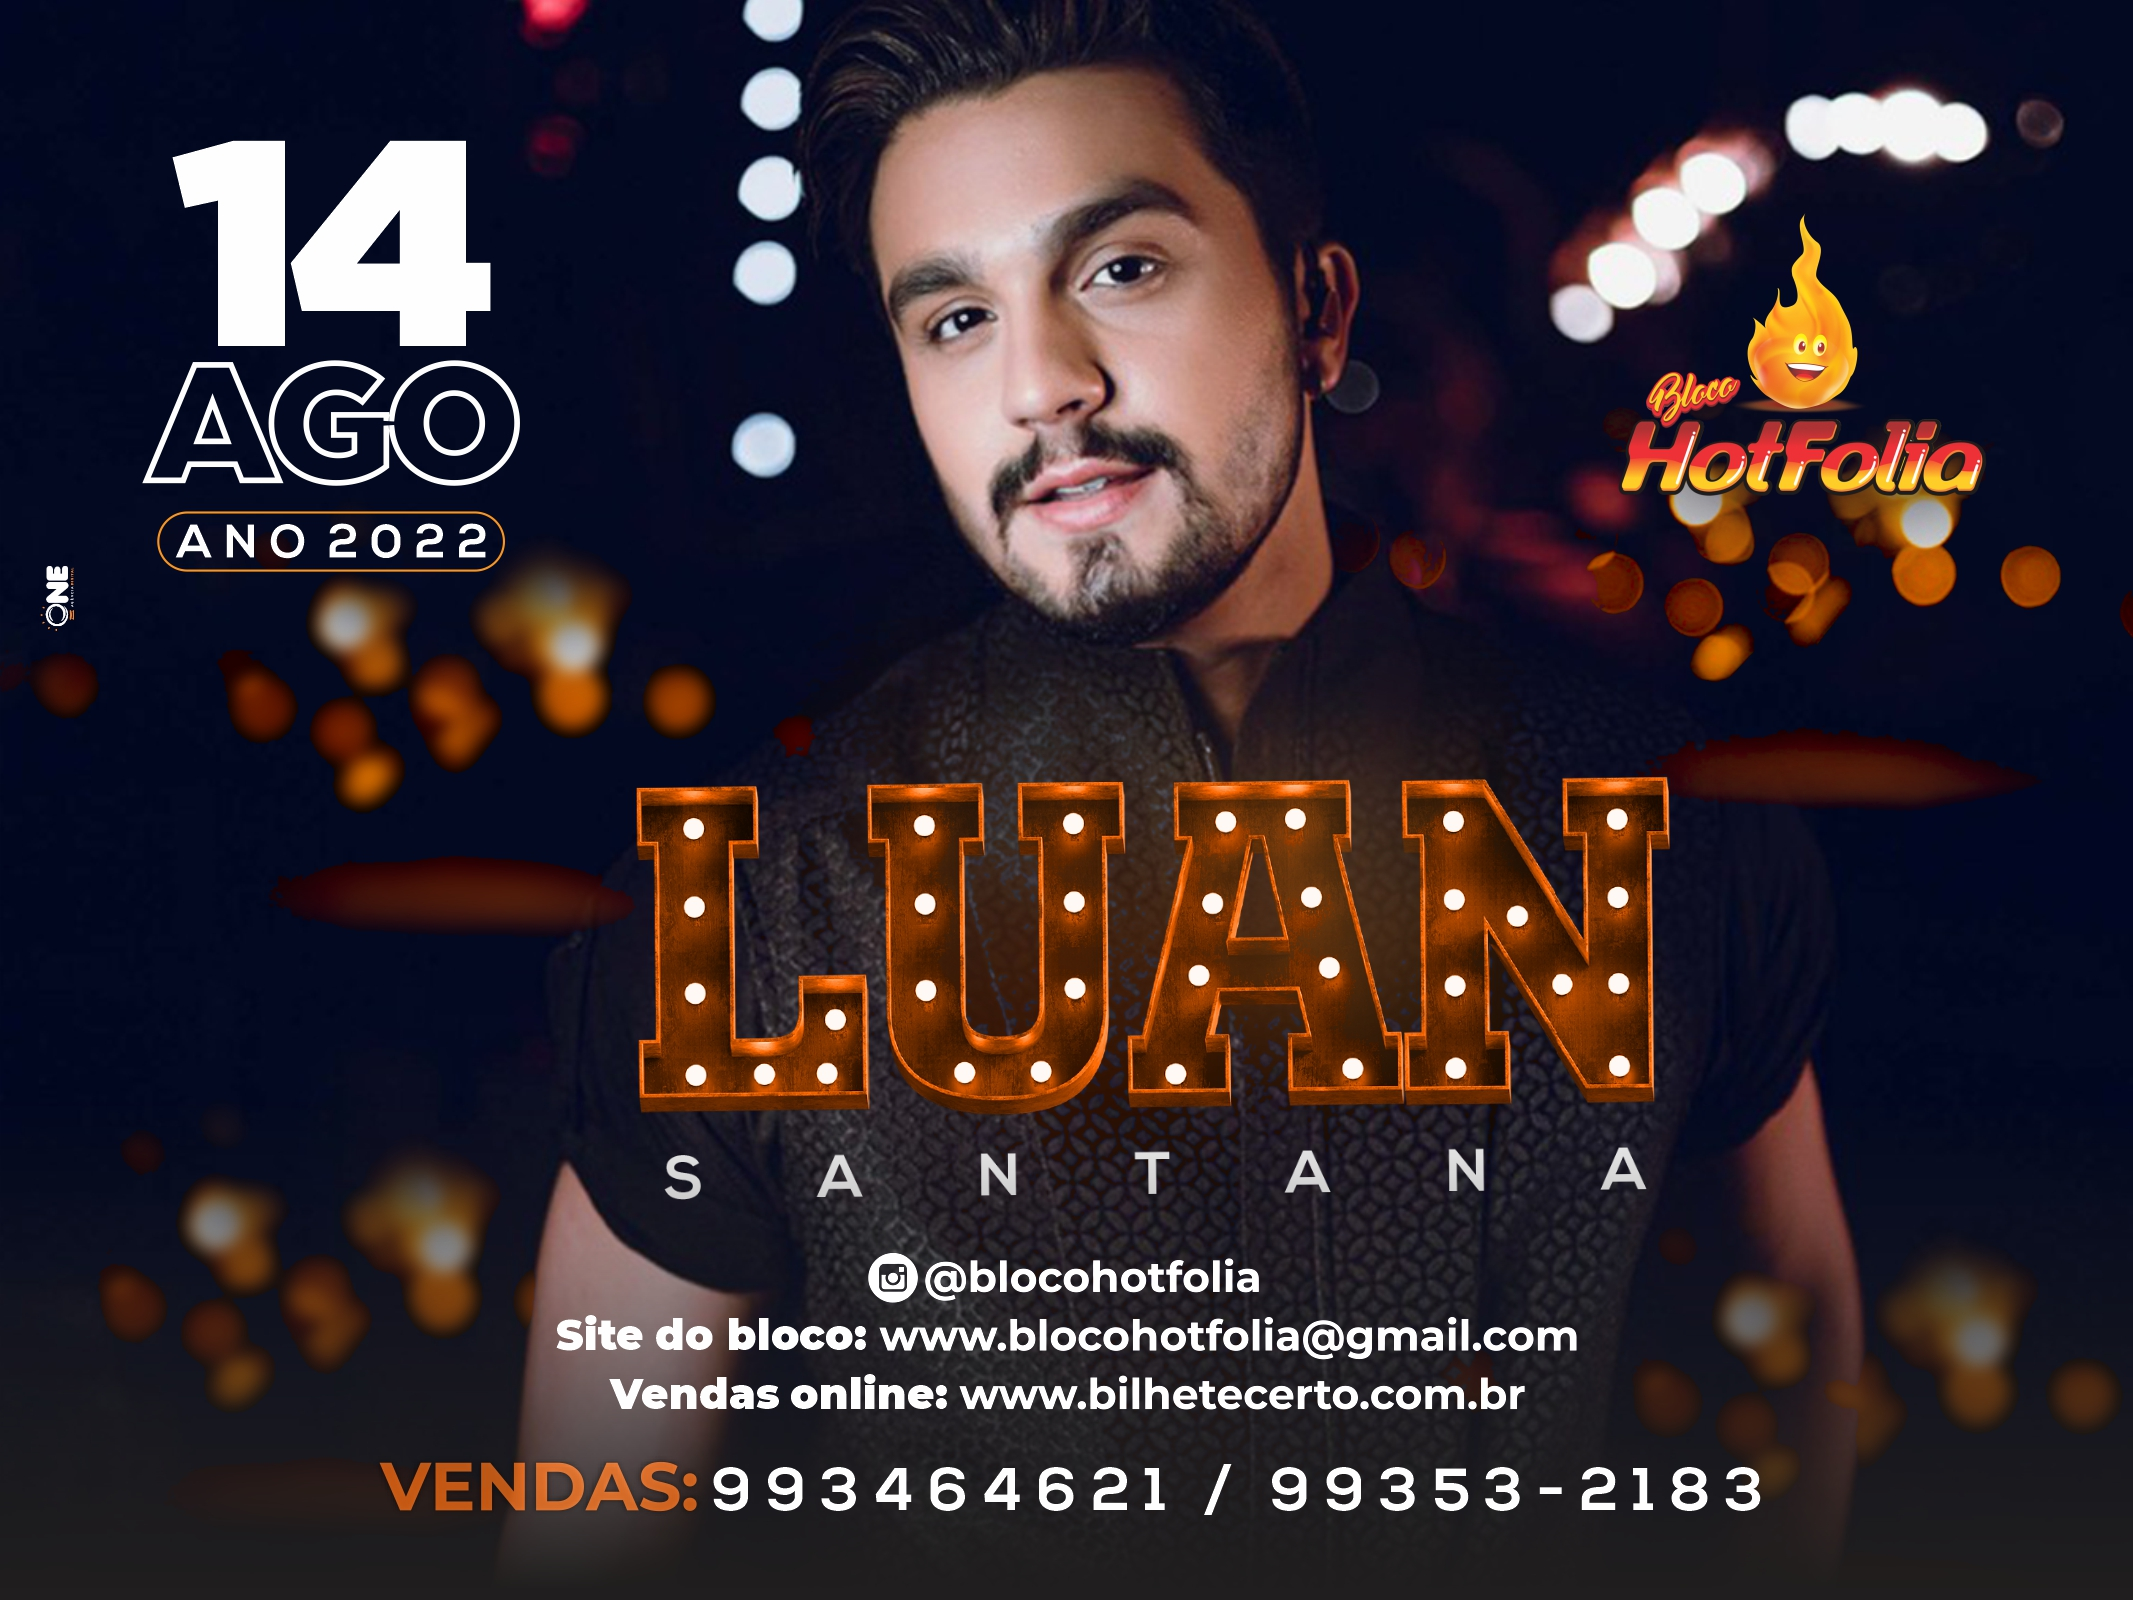 HOT SERTANEJO - LUAN SANTANA